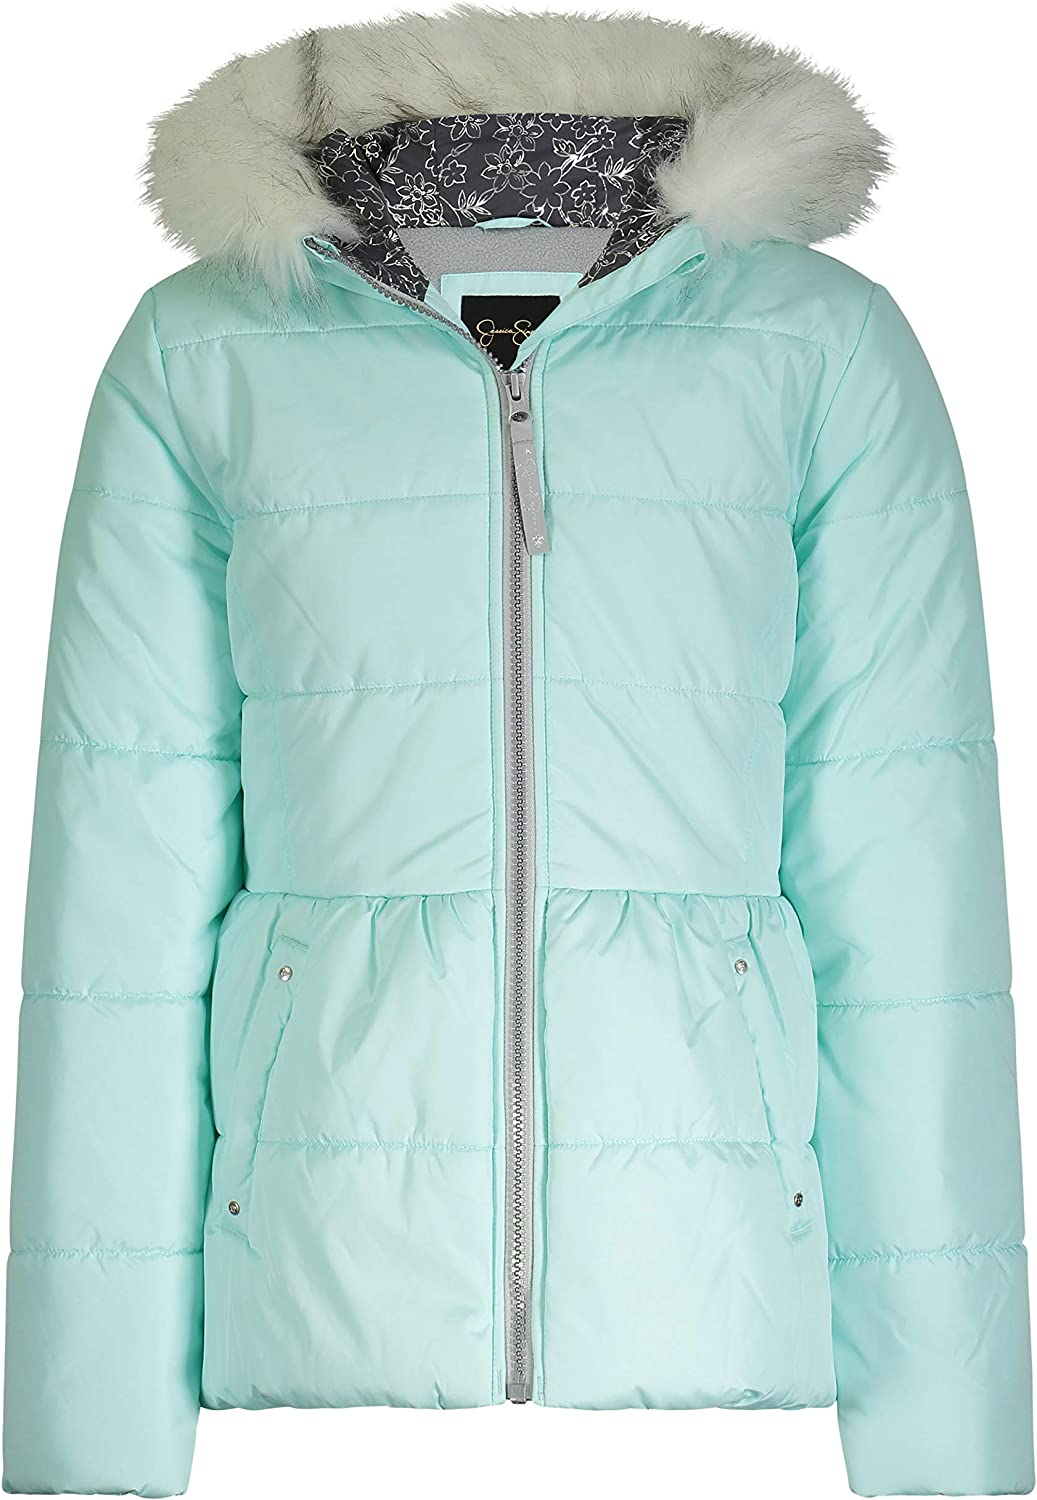 Jessica Credence Simpson Girls' Miami Mall Parka Expedition